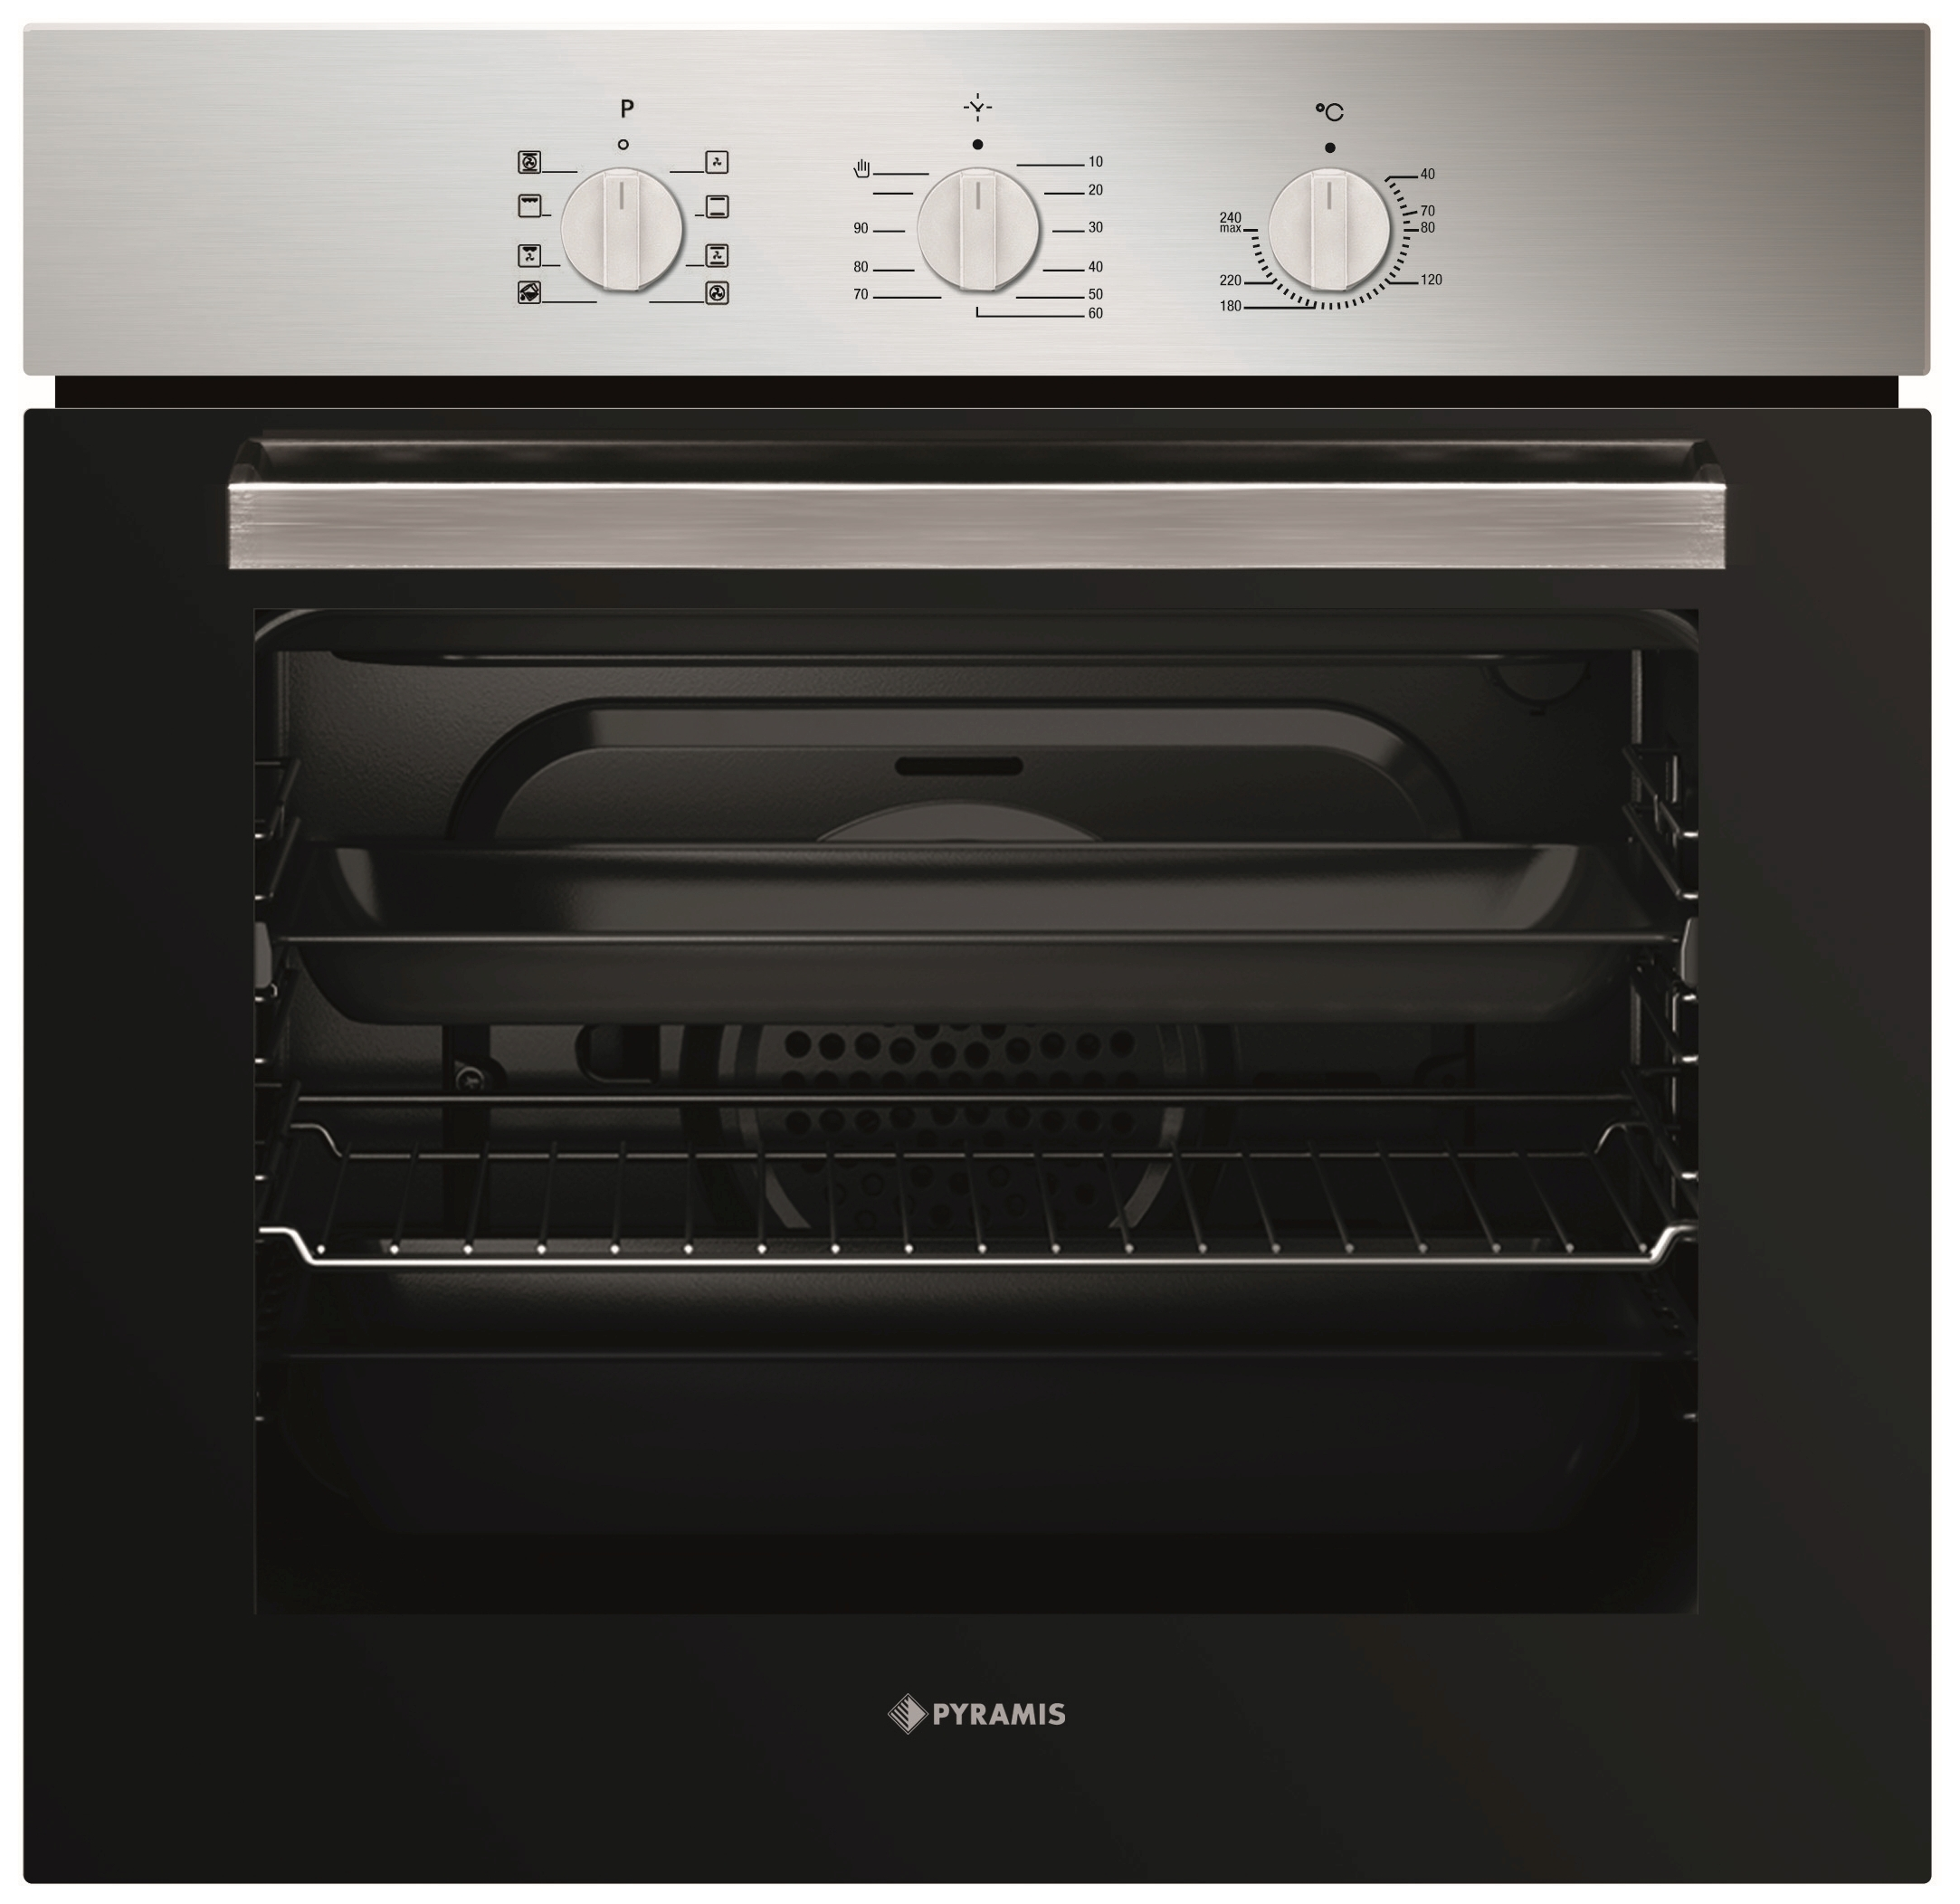 Backofen 60In 1220 inox Backofen - 34003601